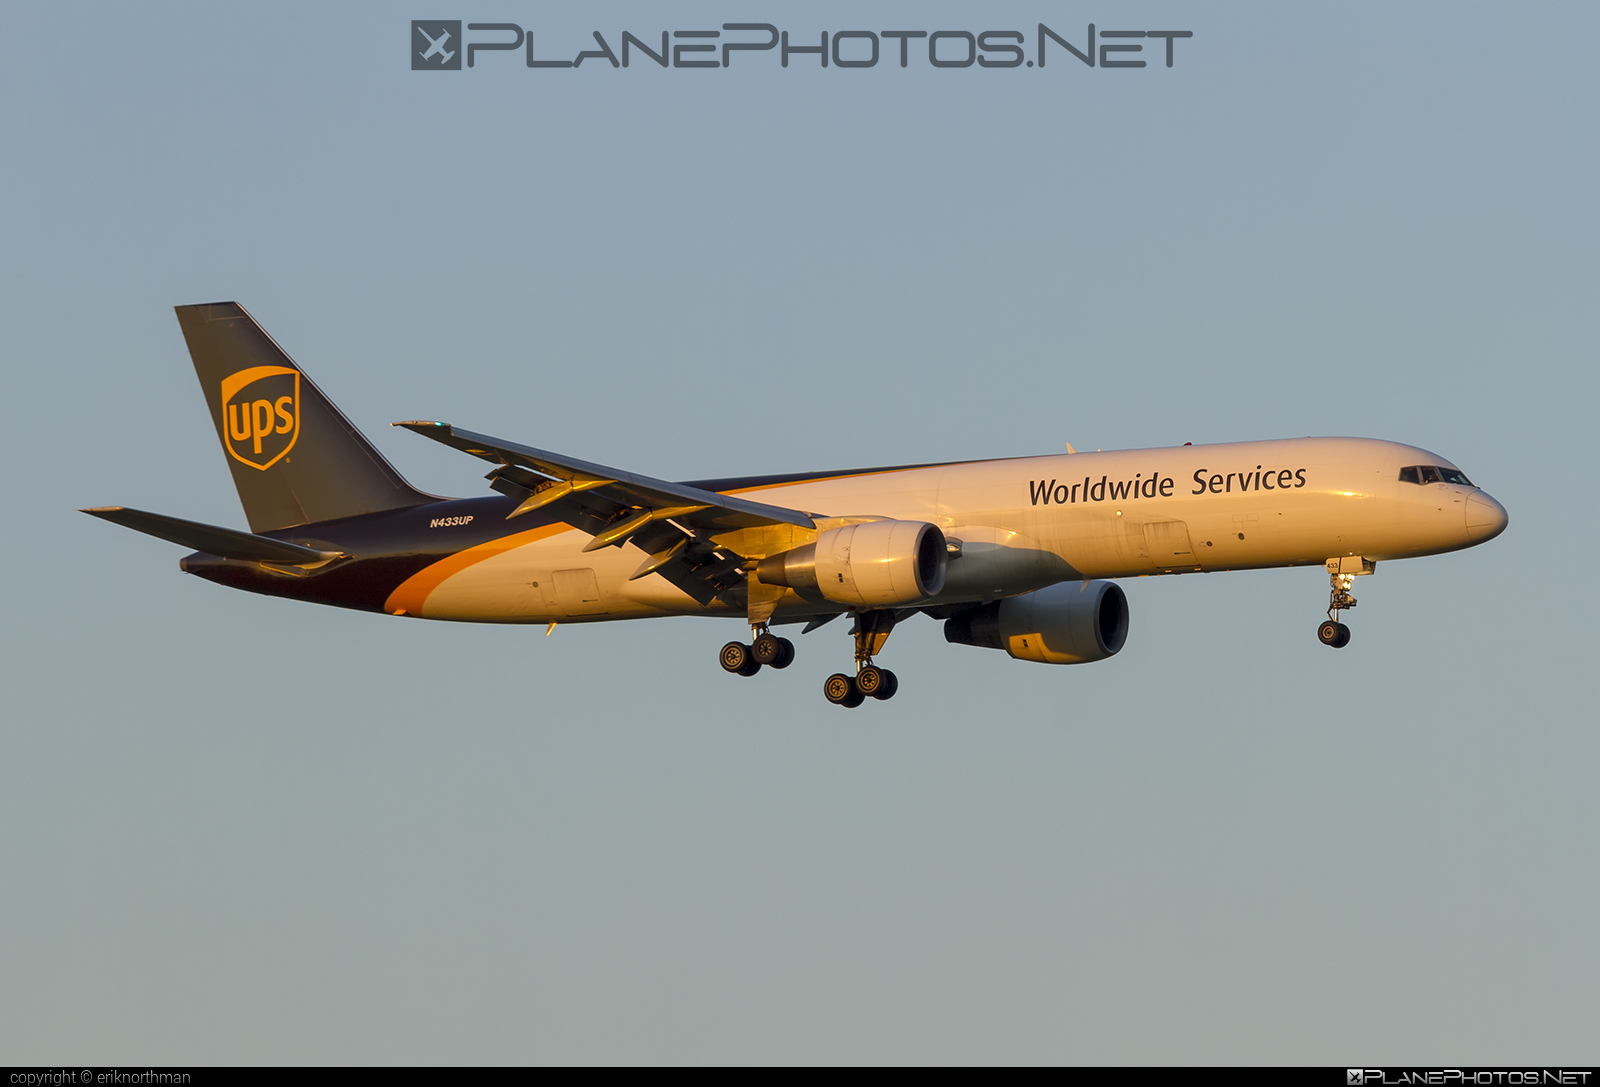 Boeing 757-200PF - N433UP operated by United Parcel Service (UPS) #b757 #boeing #boeing757 #ups #upsairlines